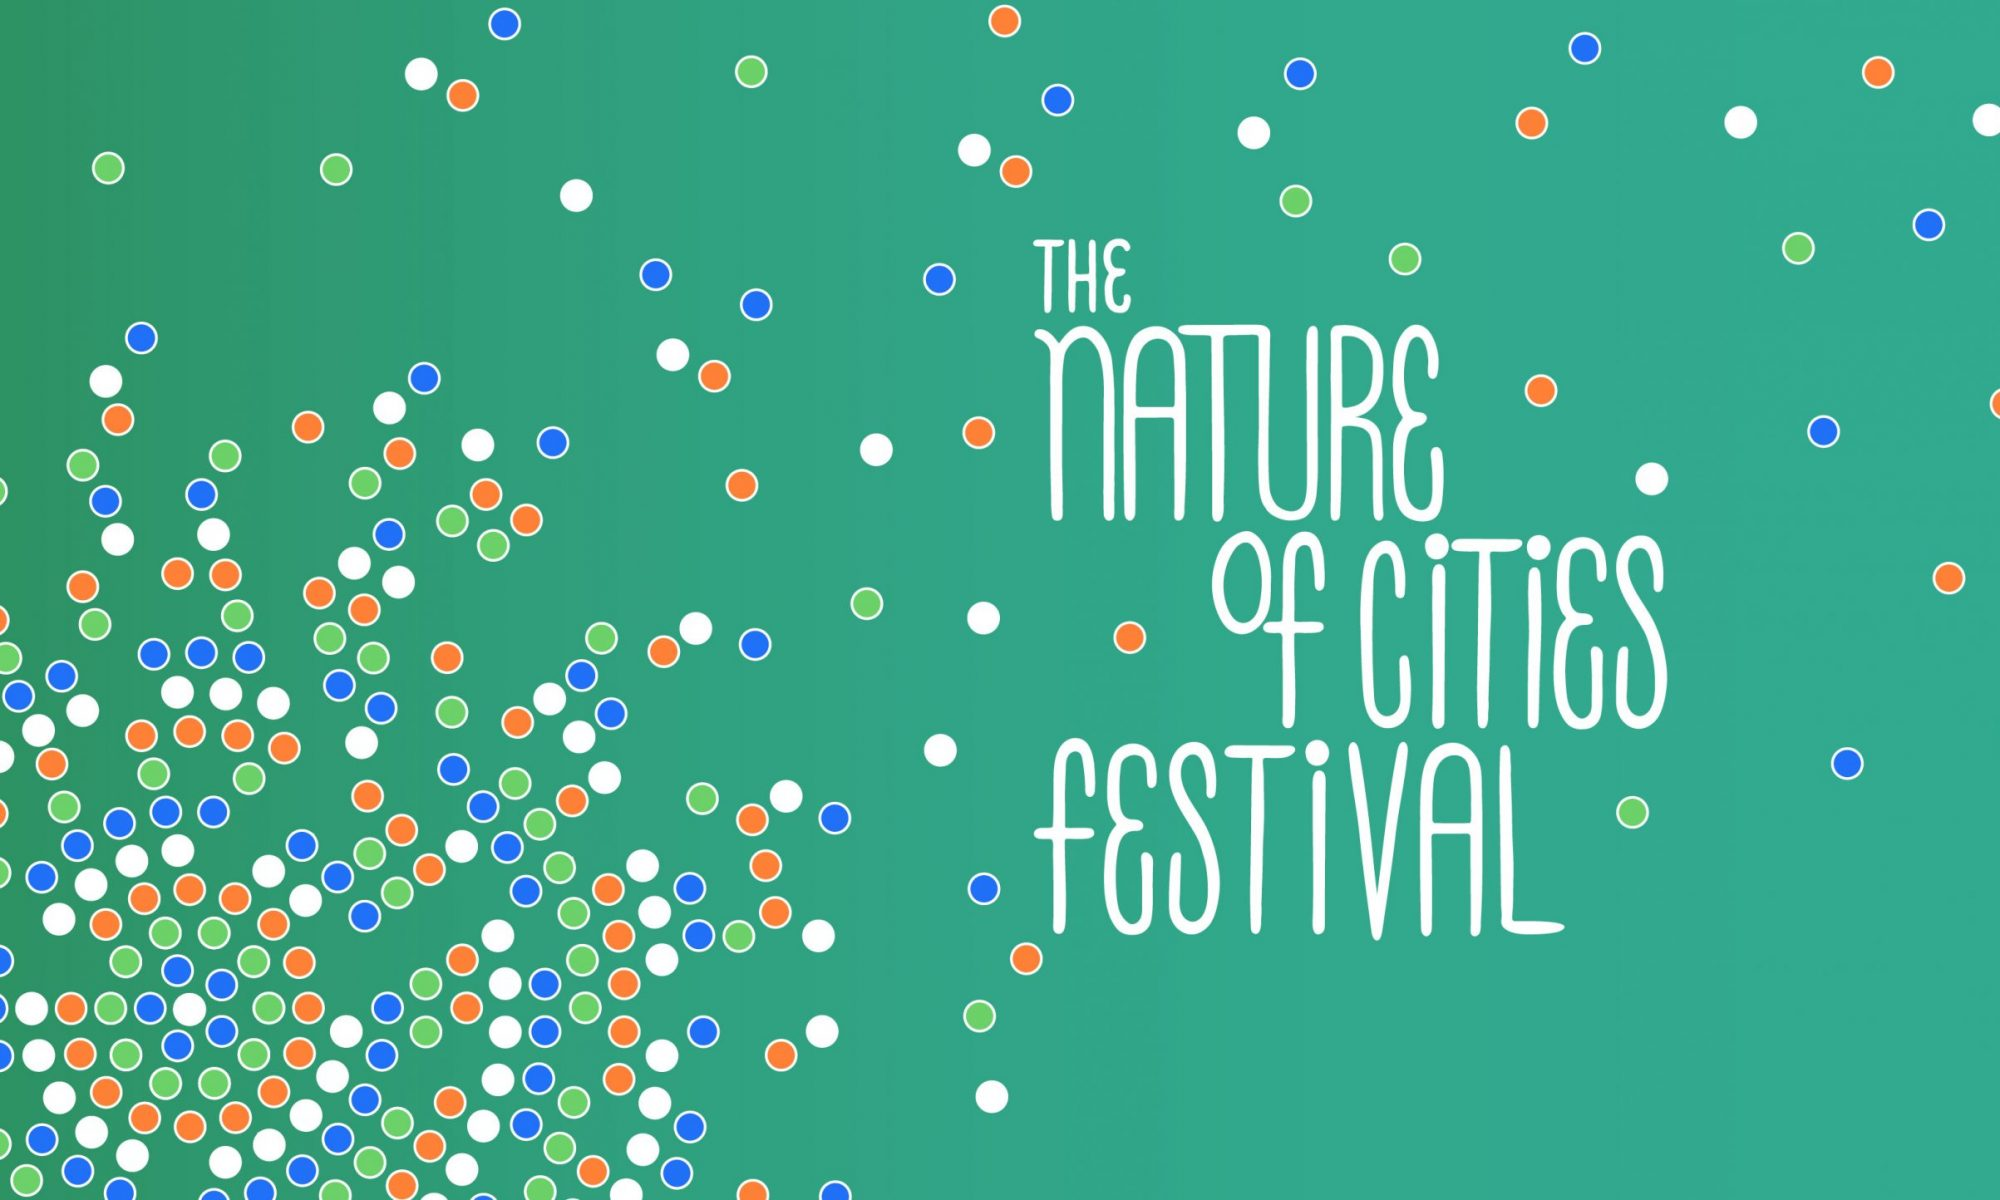 The Nature of Cities Festival